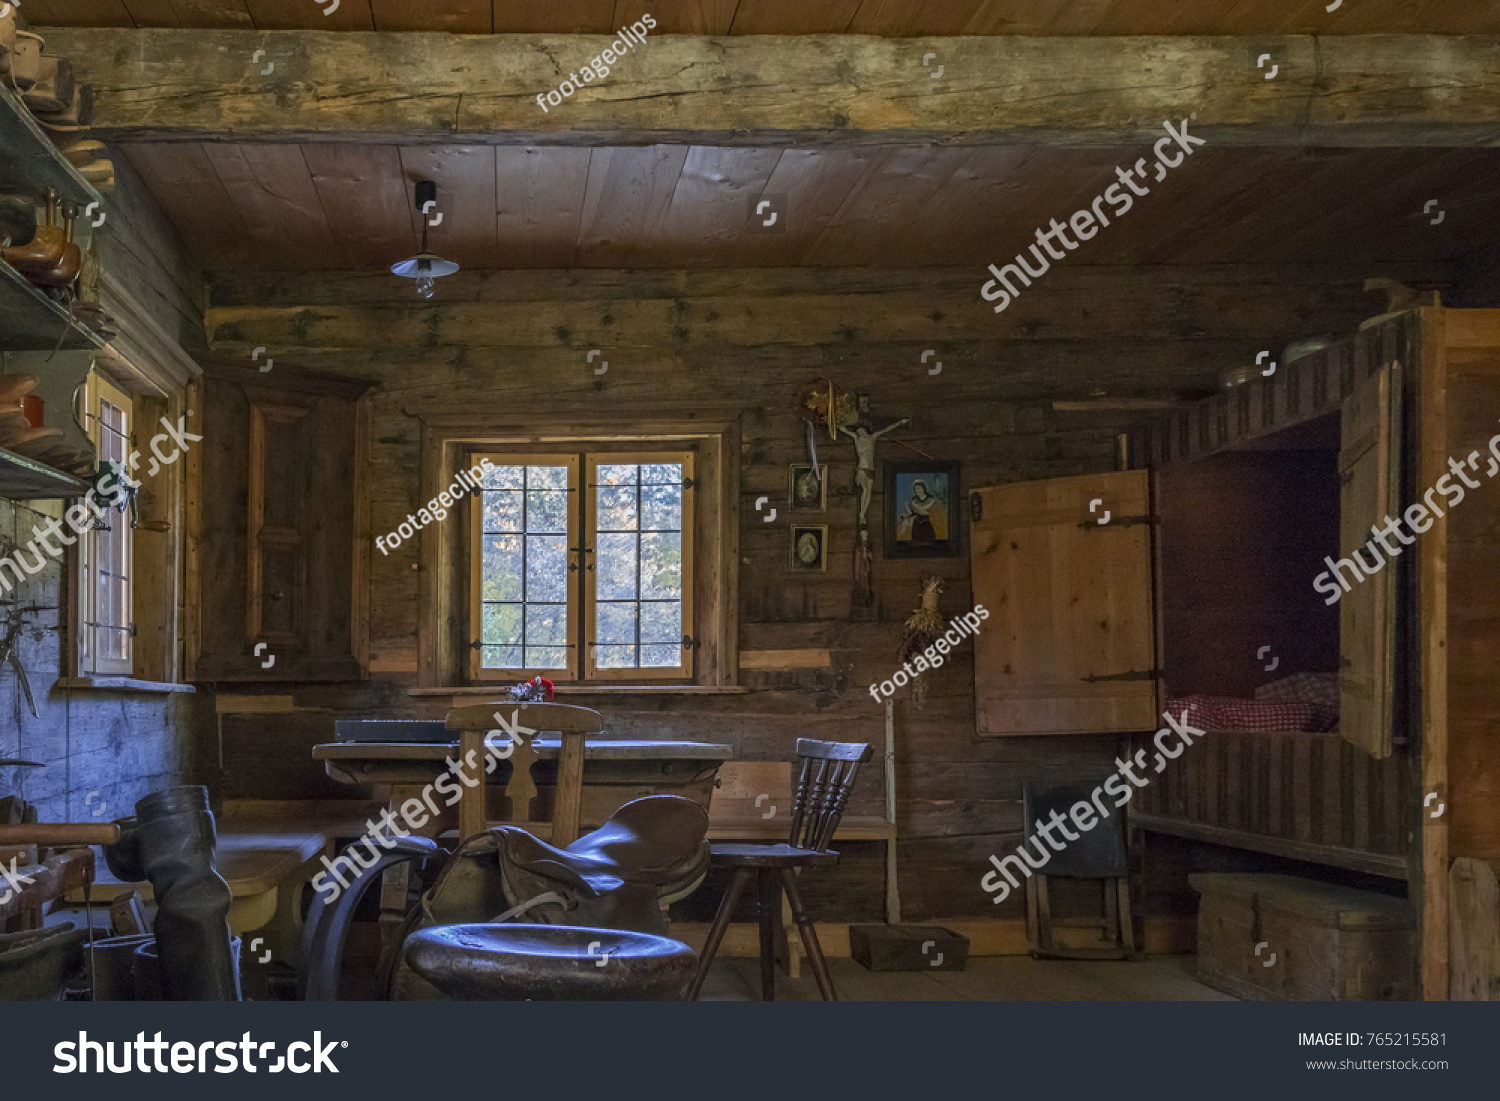 Saddlery And Cobbler In The Artisan House   Handwerkerhaus In The Markus  Wasmeier Farm And Winter